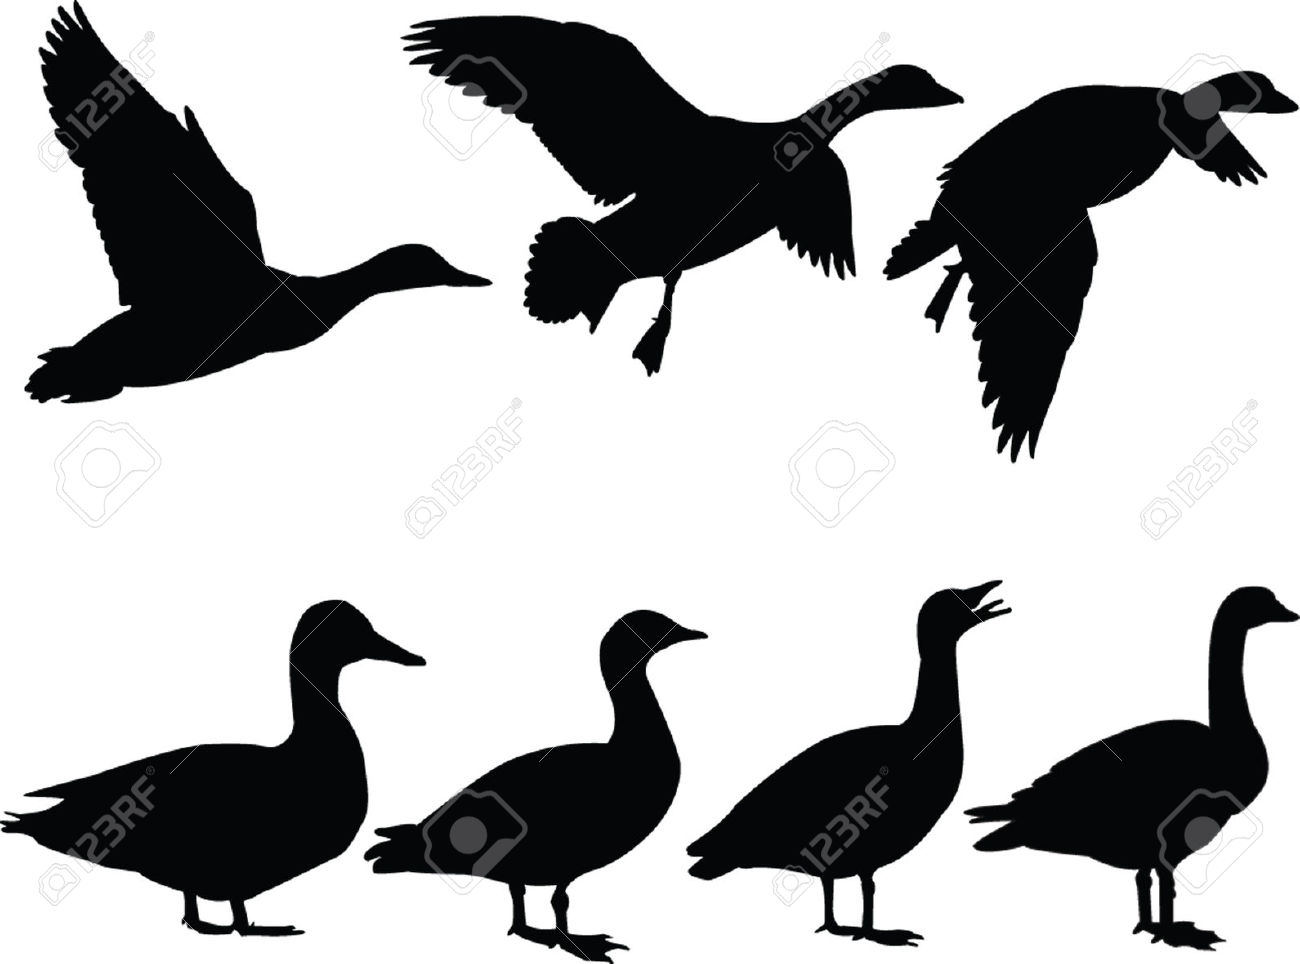 Duck Silhouette Clipart.